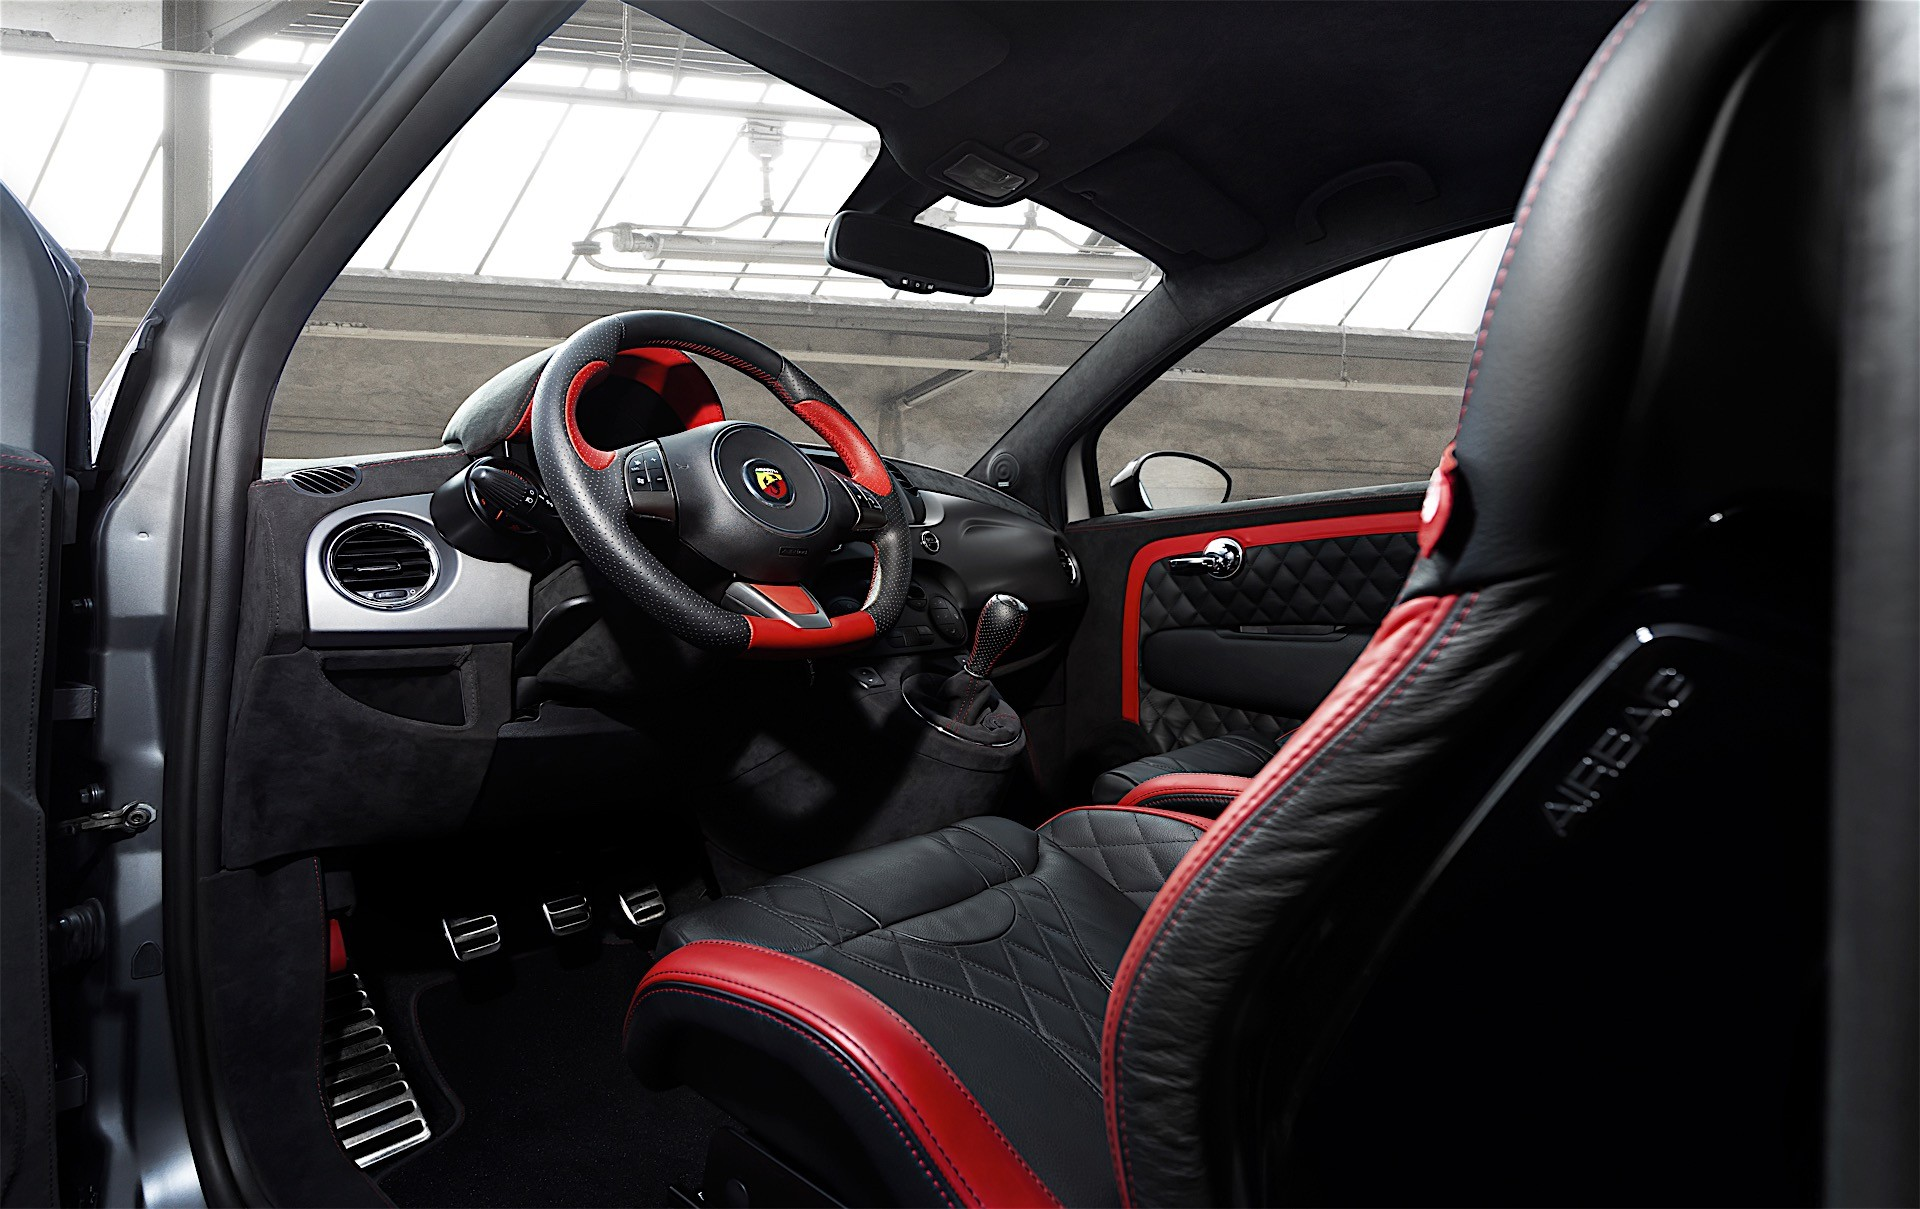 pogea-racing-develops-the-ultimate-abarth-500-it-comes-with-404-hp_16